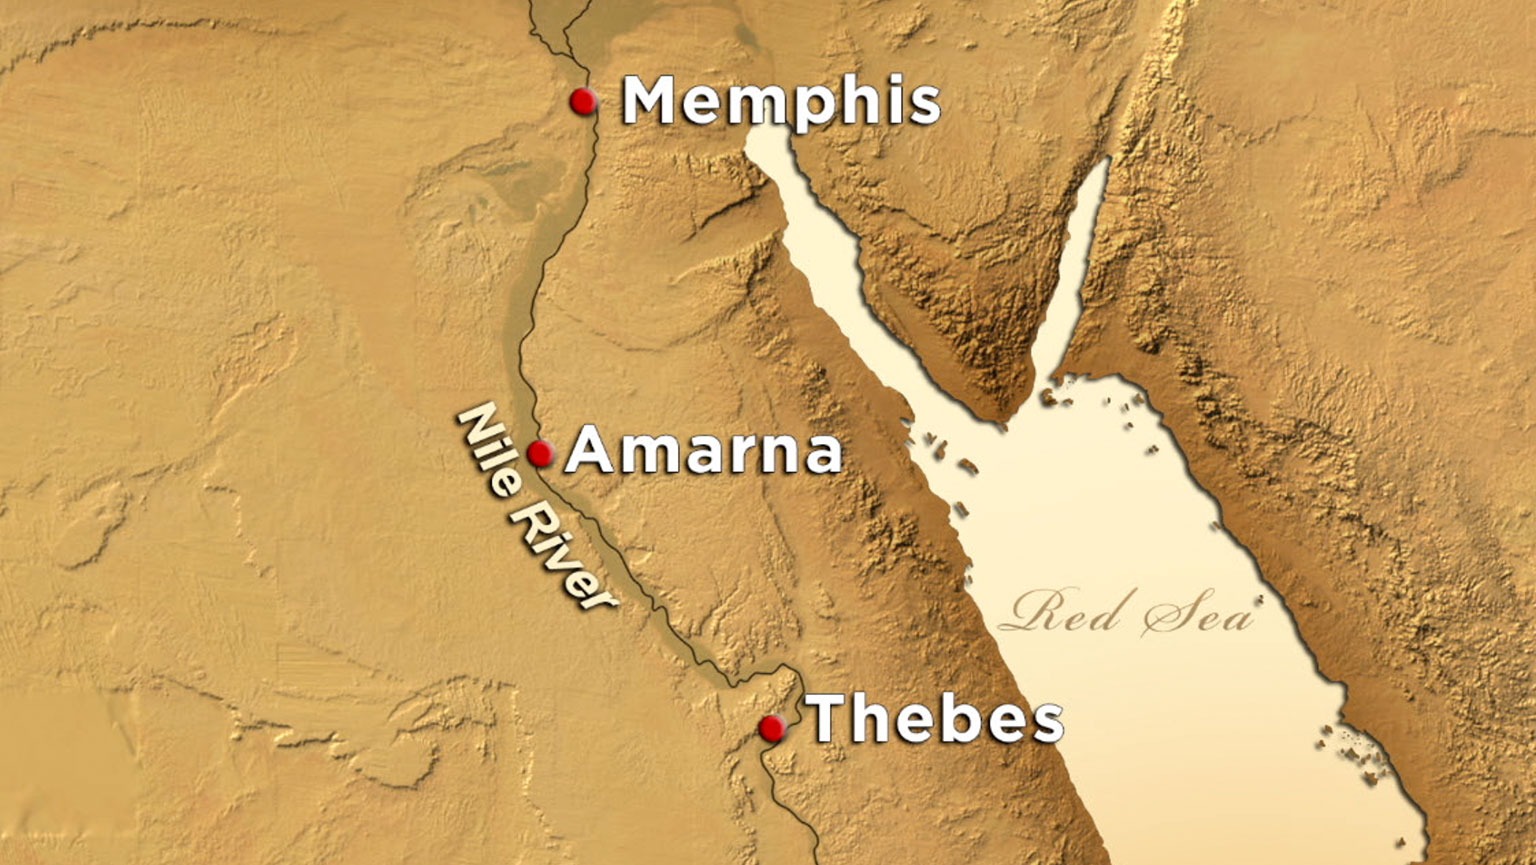 Amarna—Revolutionary Capital